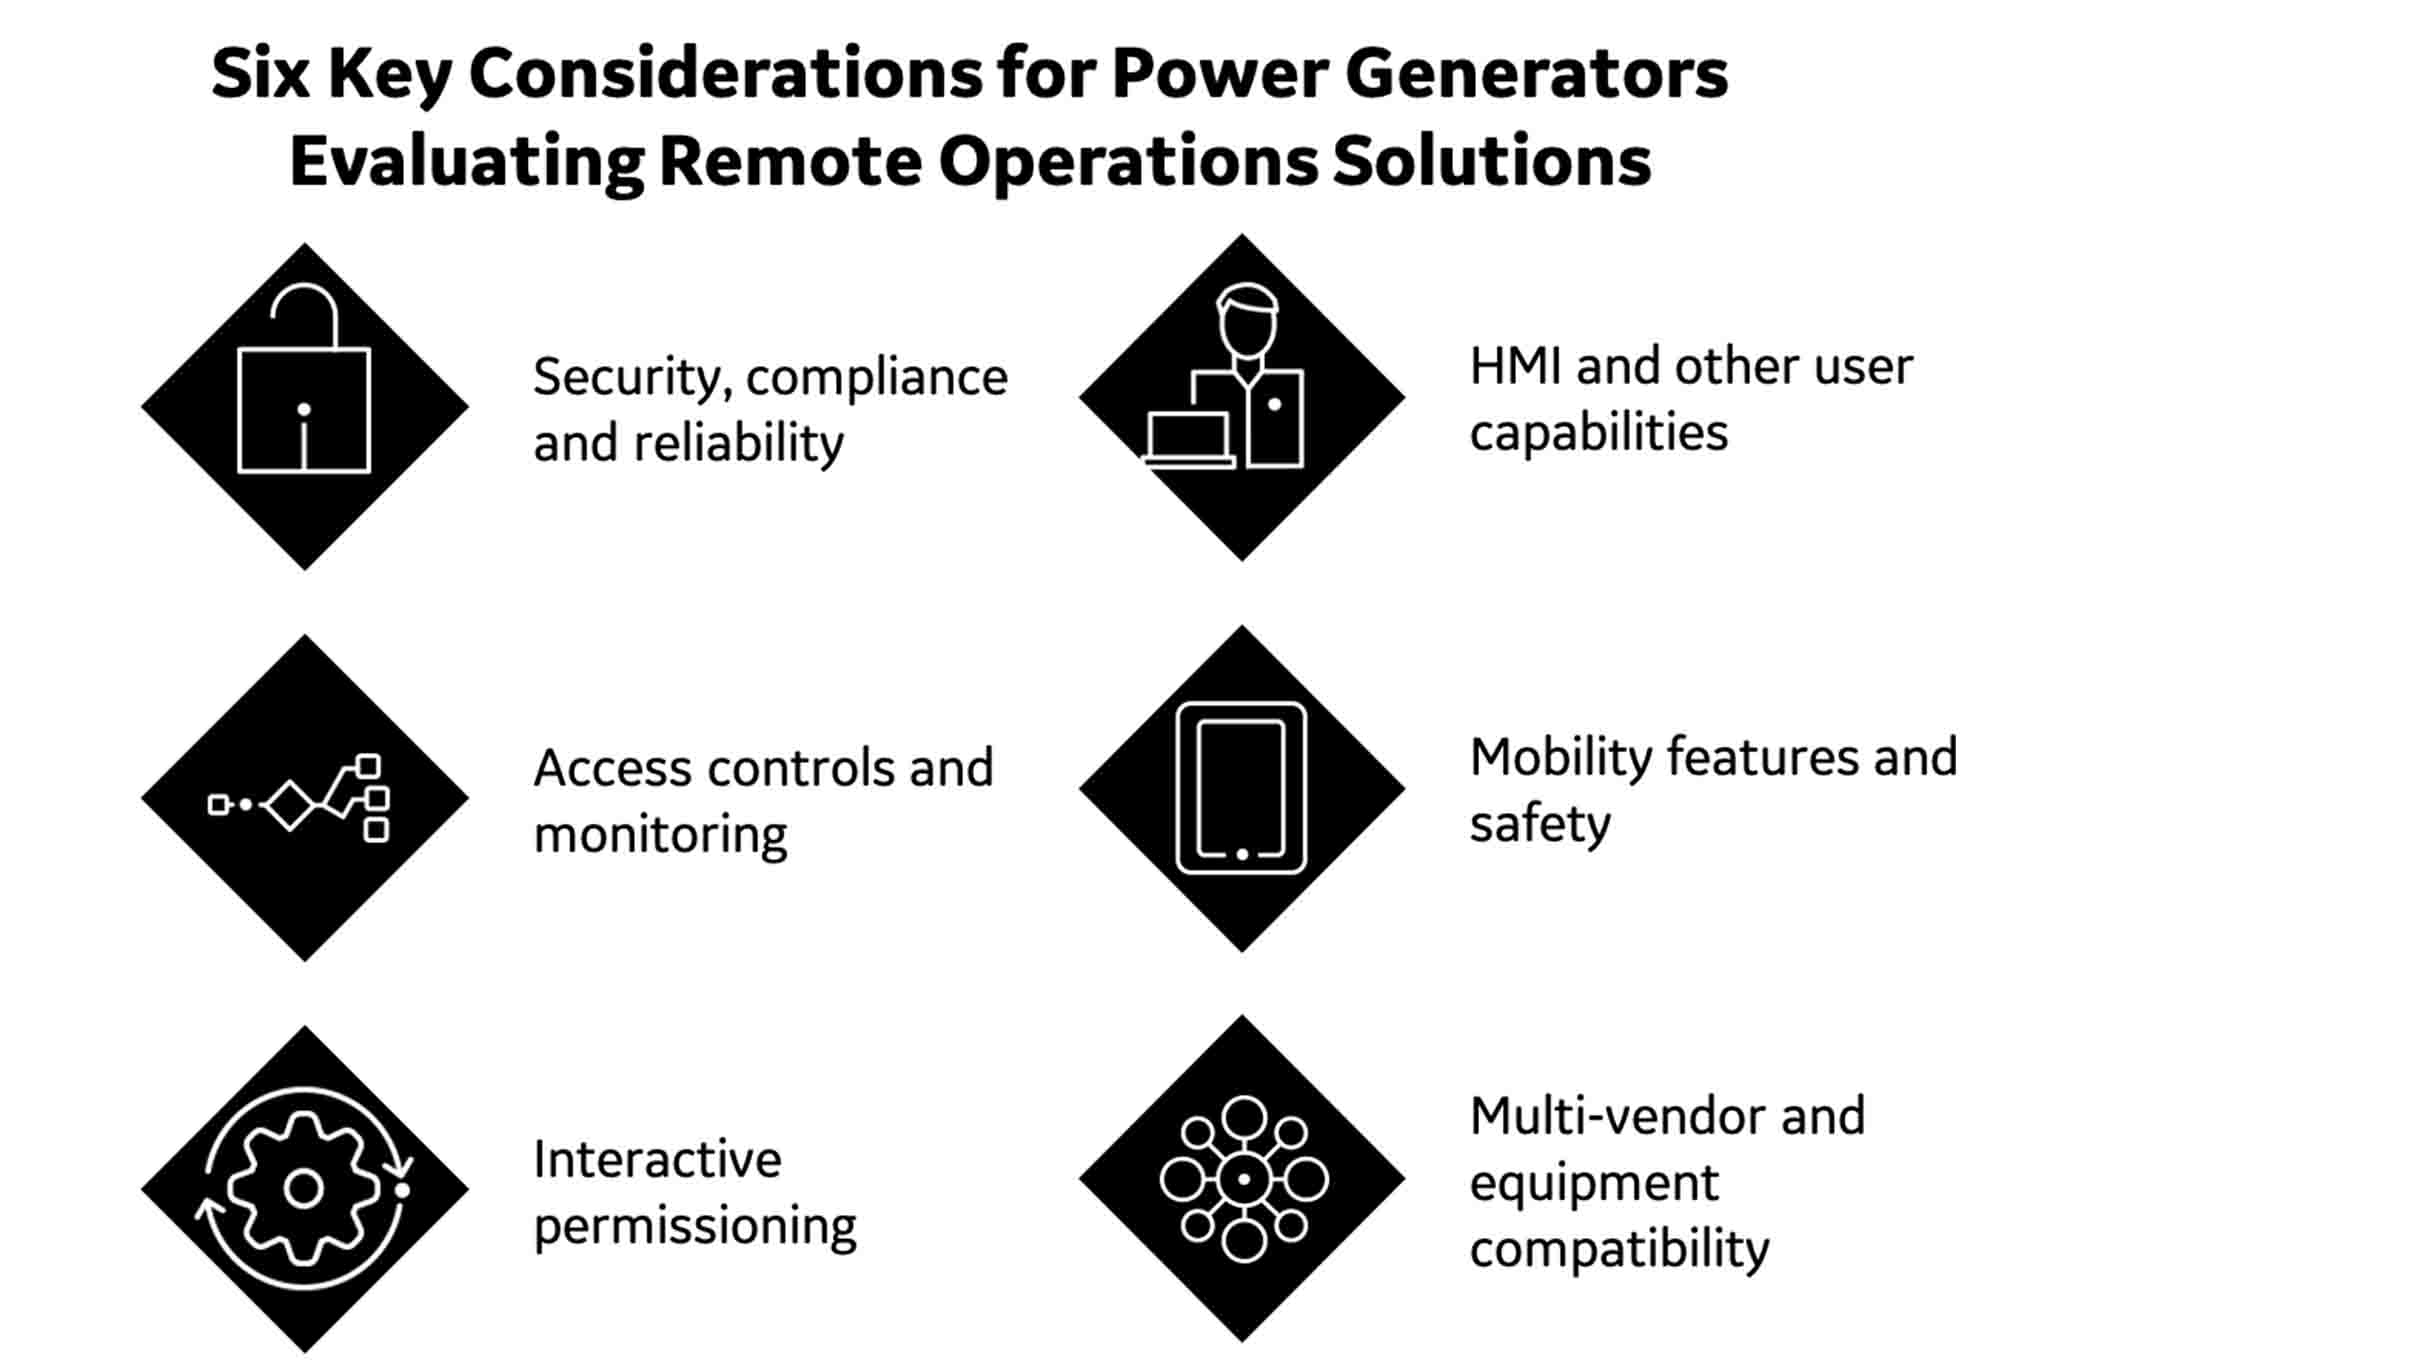 Six key considerations for remote monitoring solutions for power generation